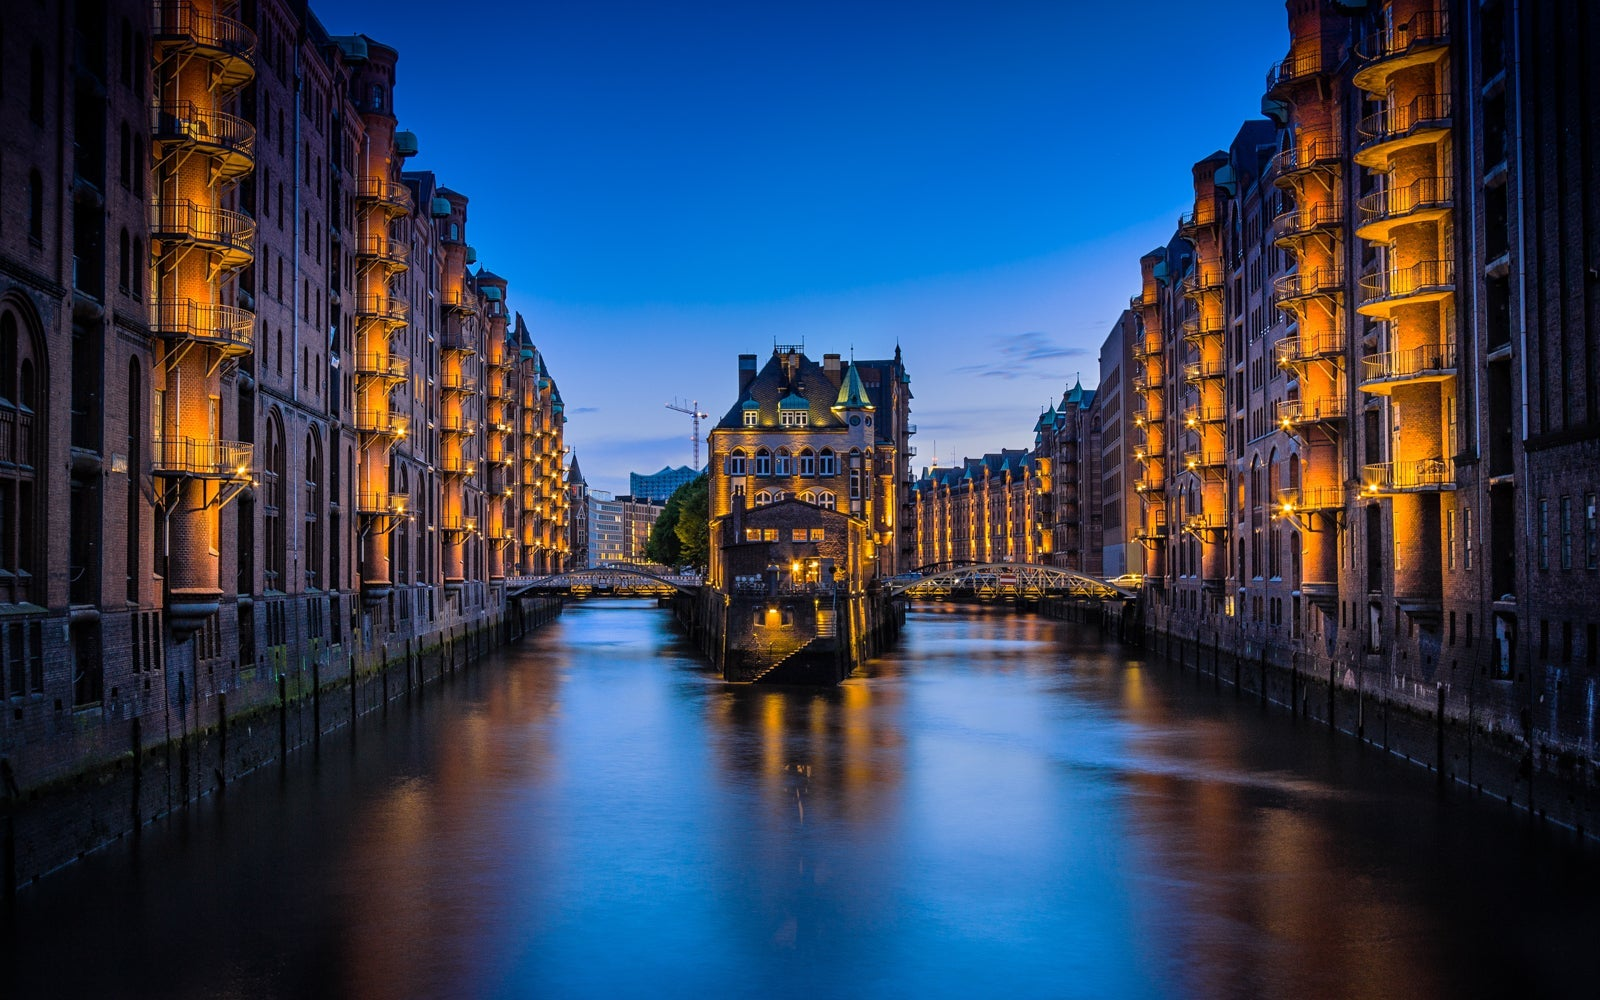 11 tips for traveling Europe on a budget